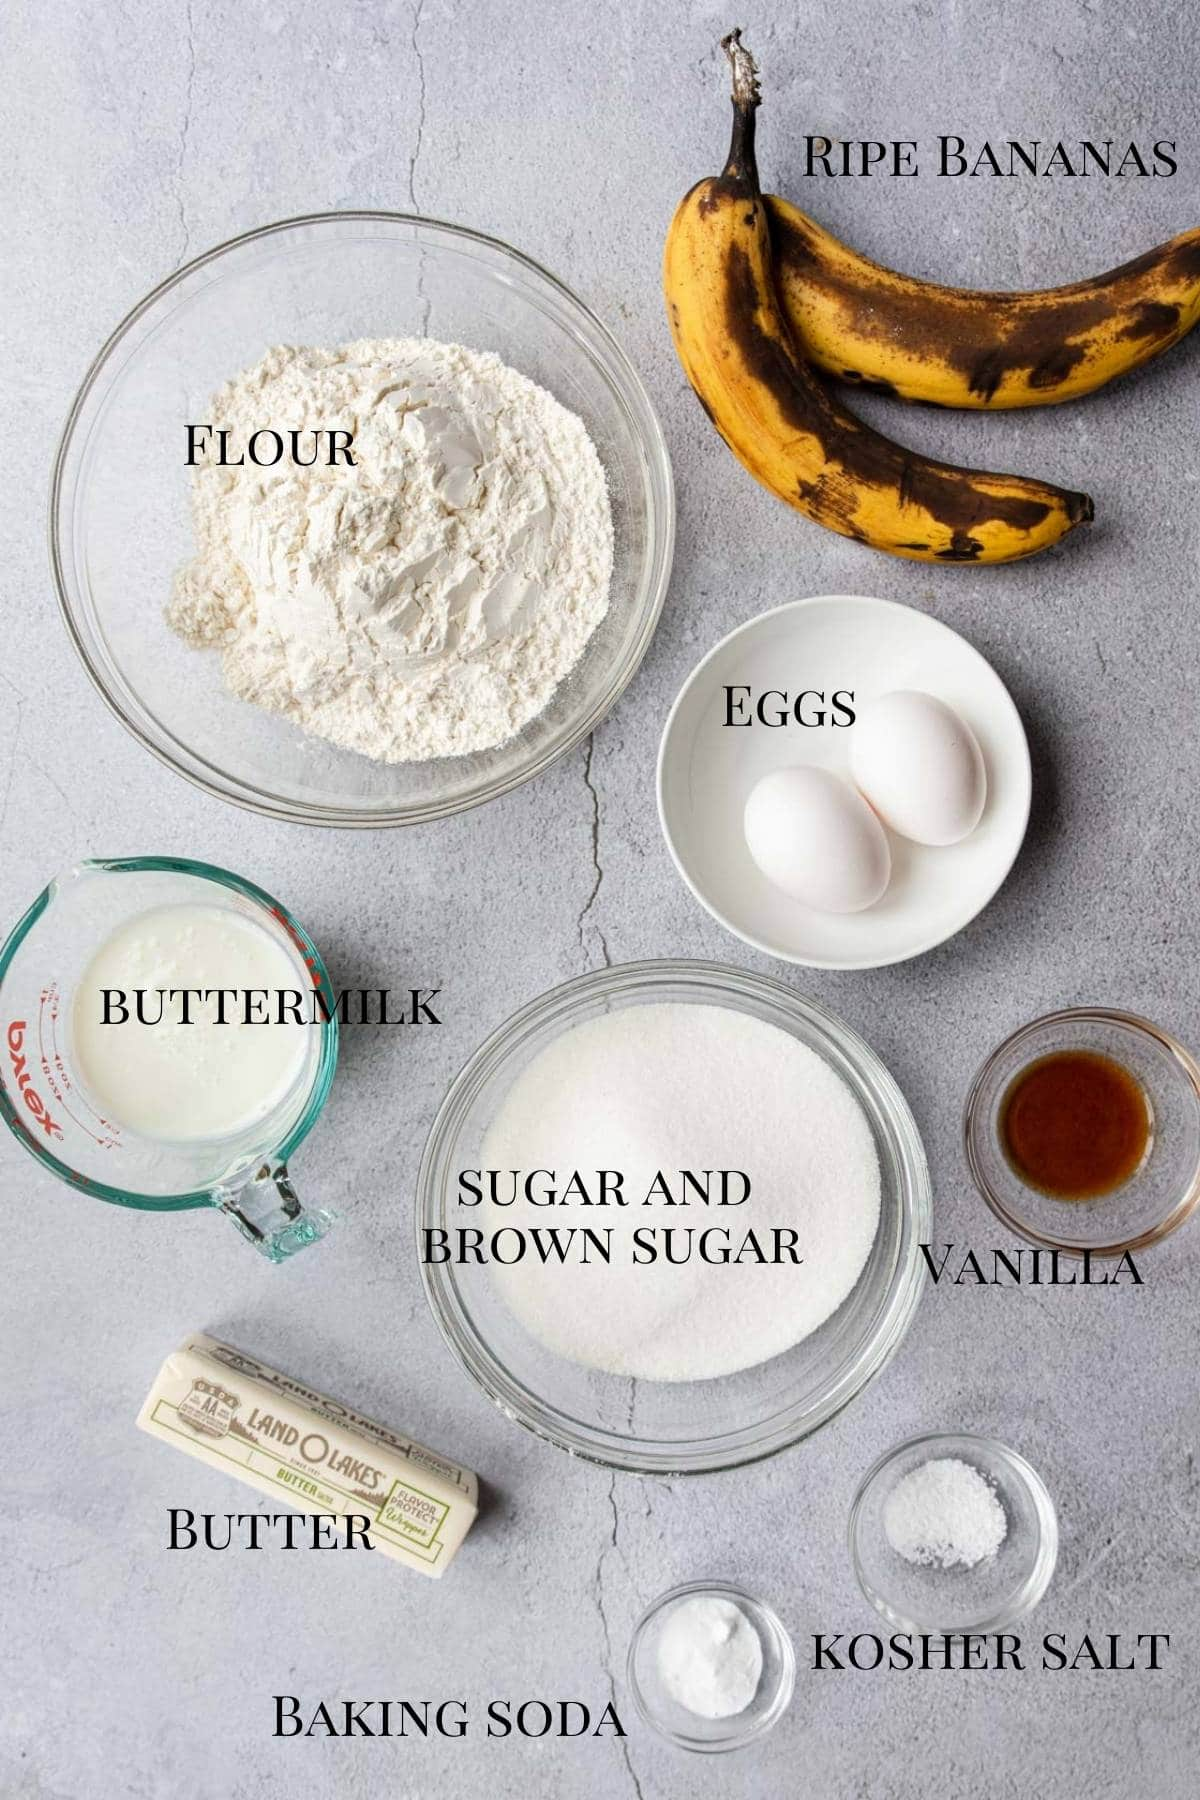 all the ingredients to make banana bars